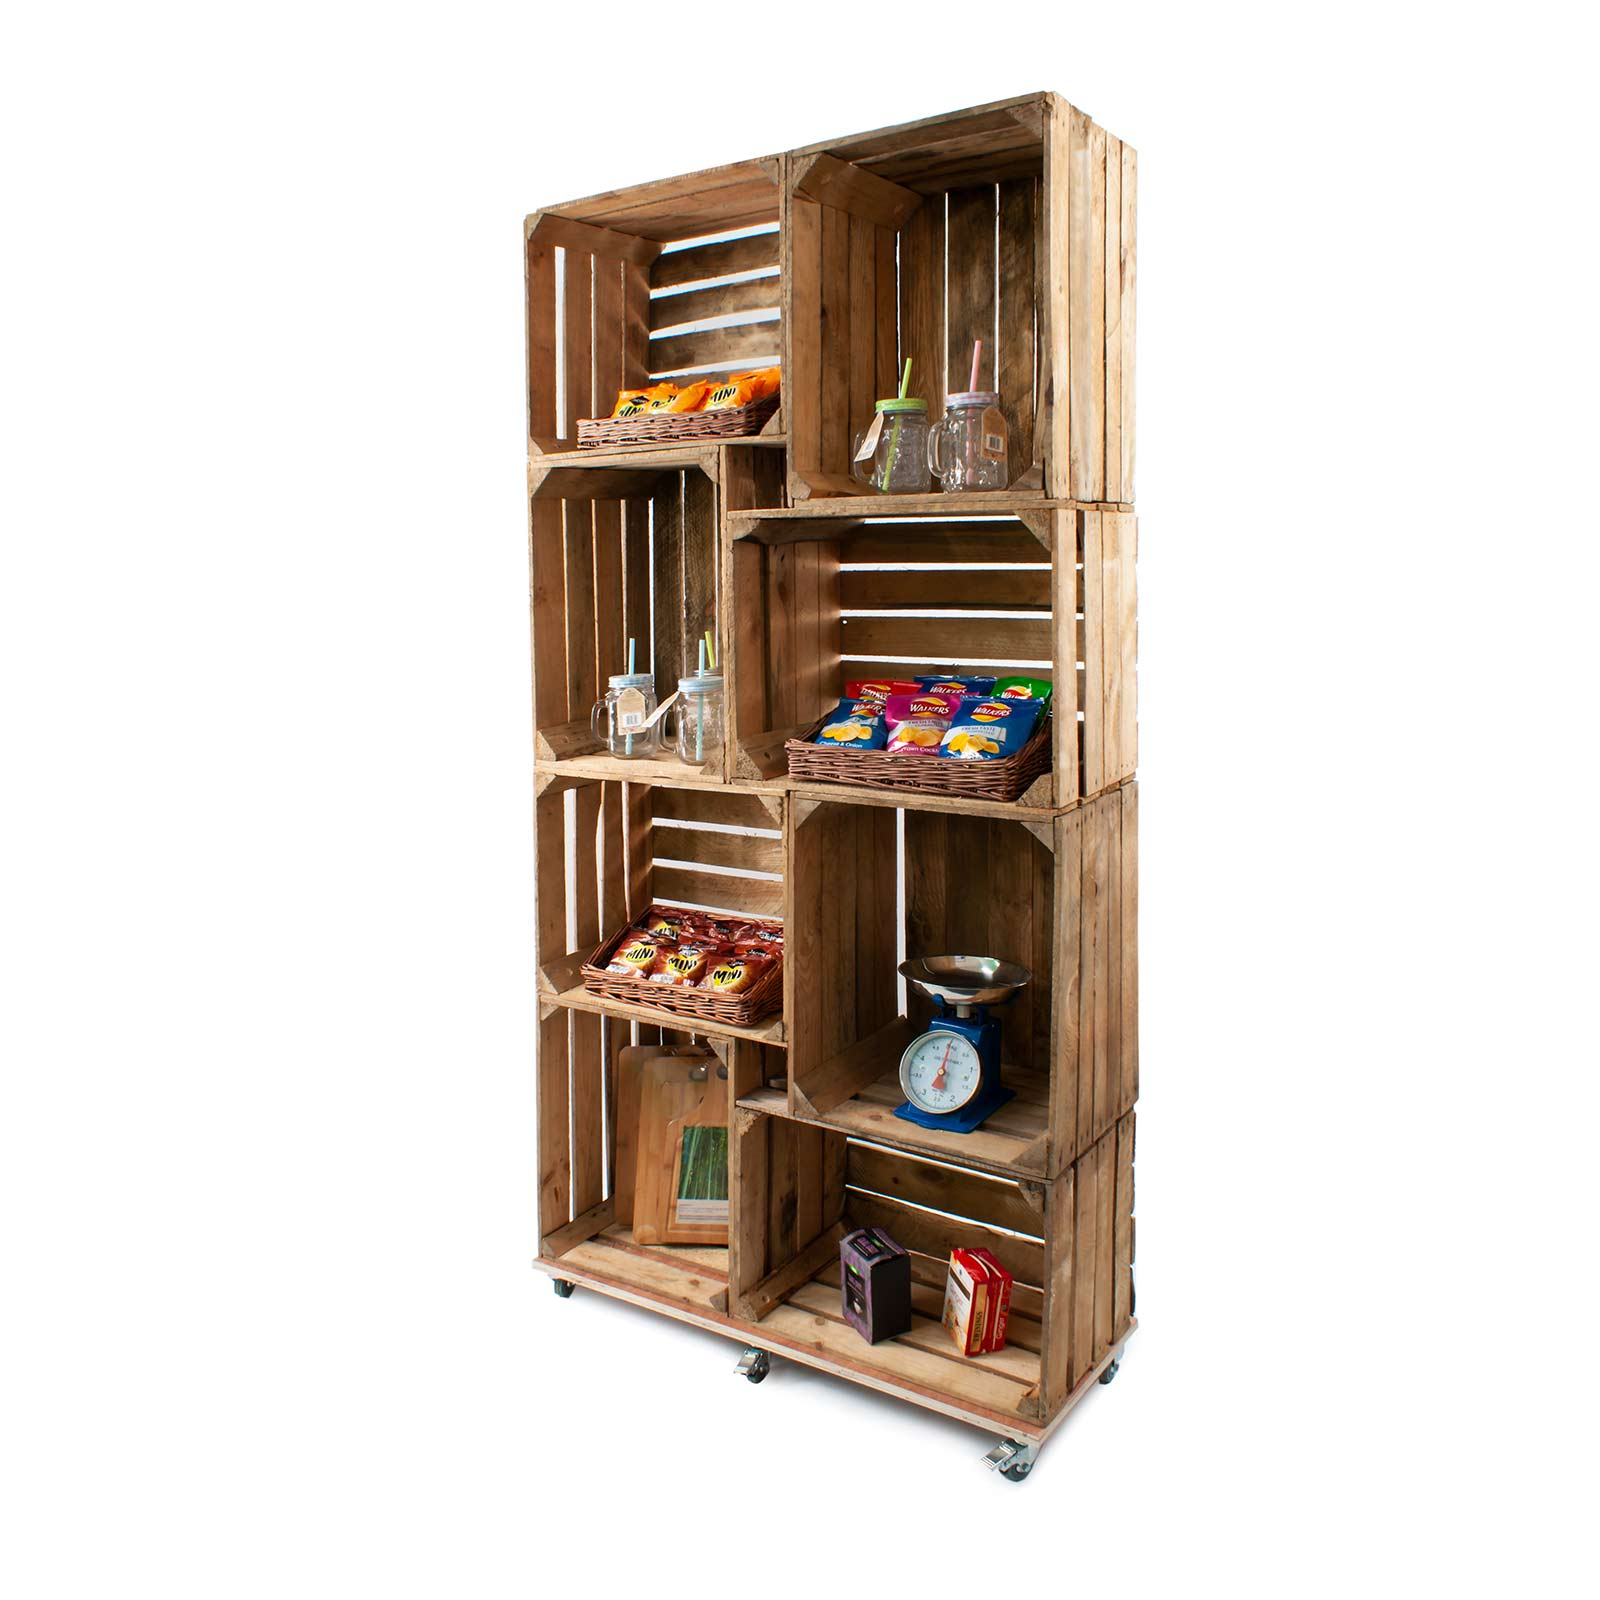 Admirable Rustic Wooden Crate Display Shelving Unit Cr8S2 Home Interior And Landscaping Oversignezvosmurscom